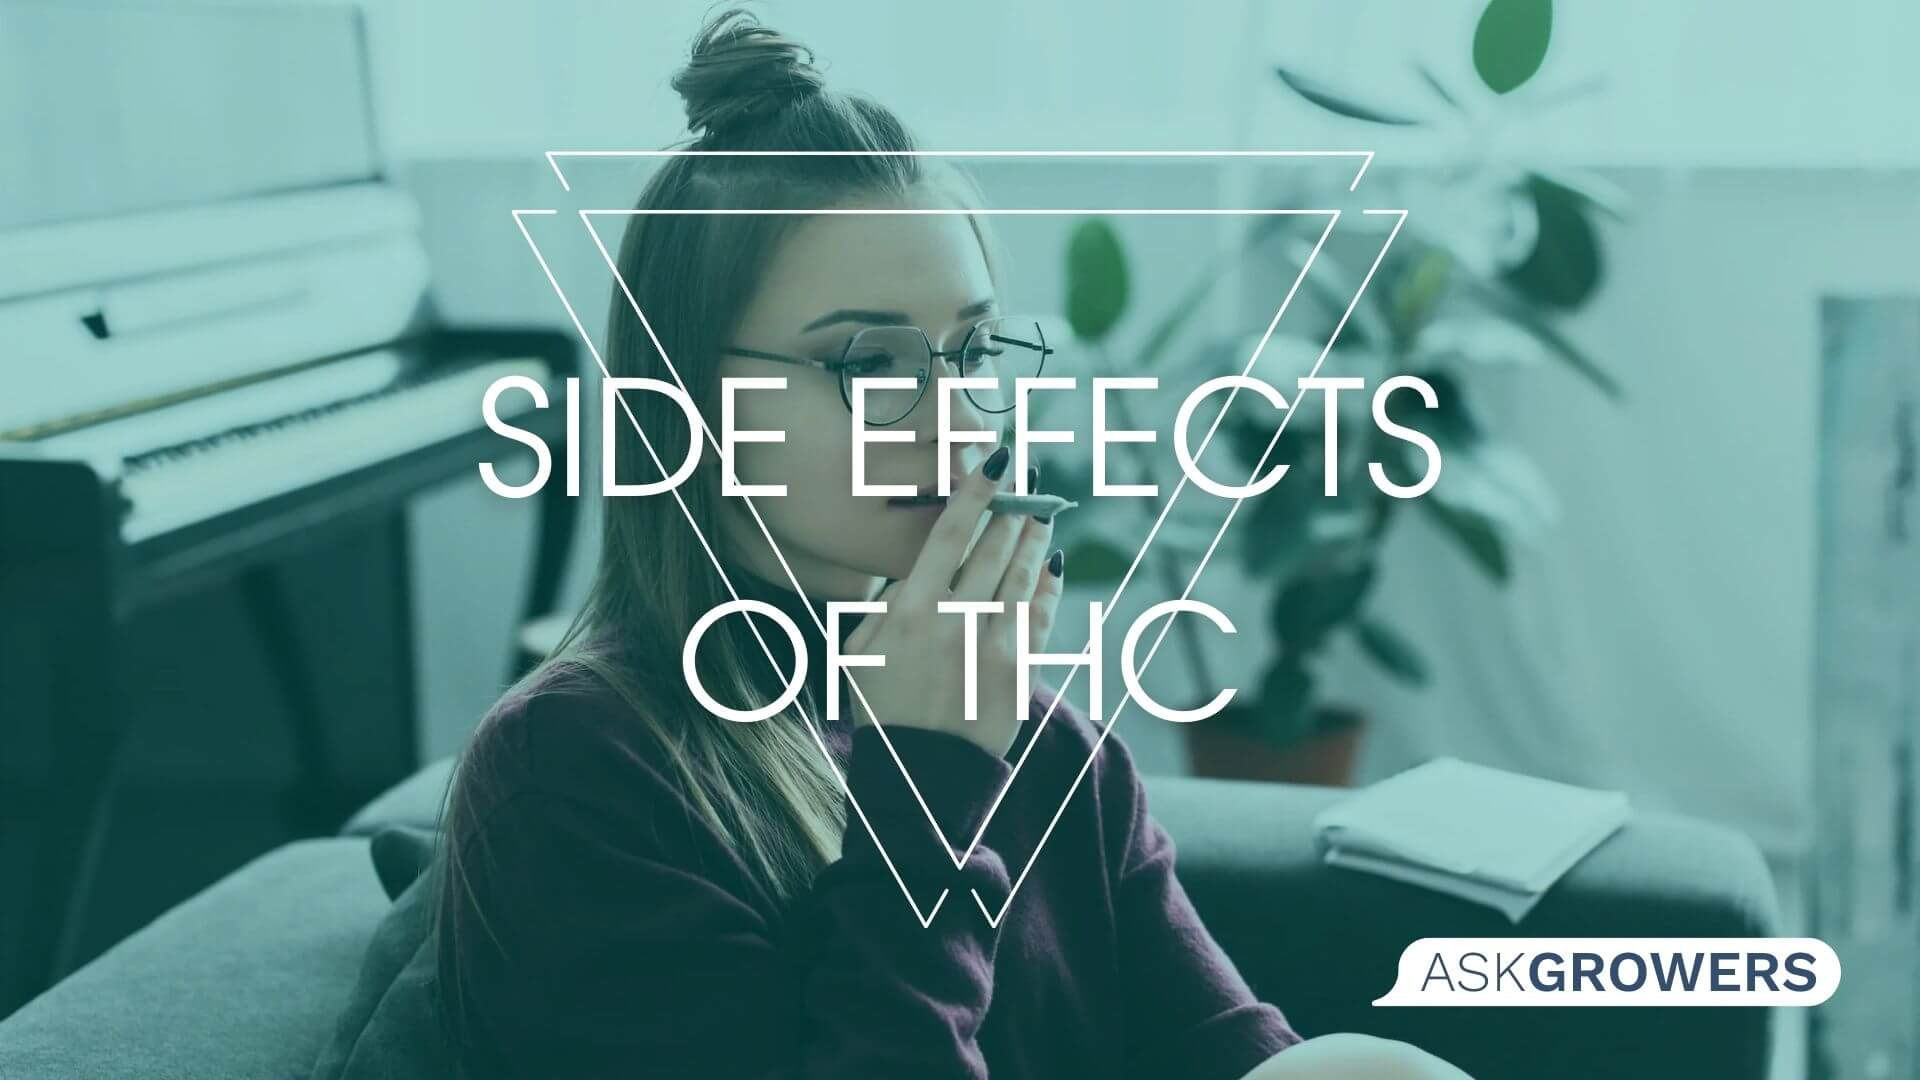 What Are the Possible Side Effects of THC or Cannabis Use?, AskGrowers